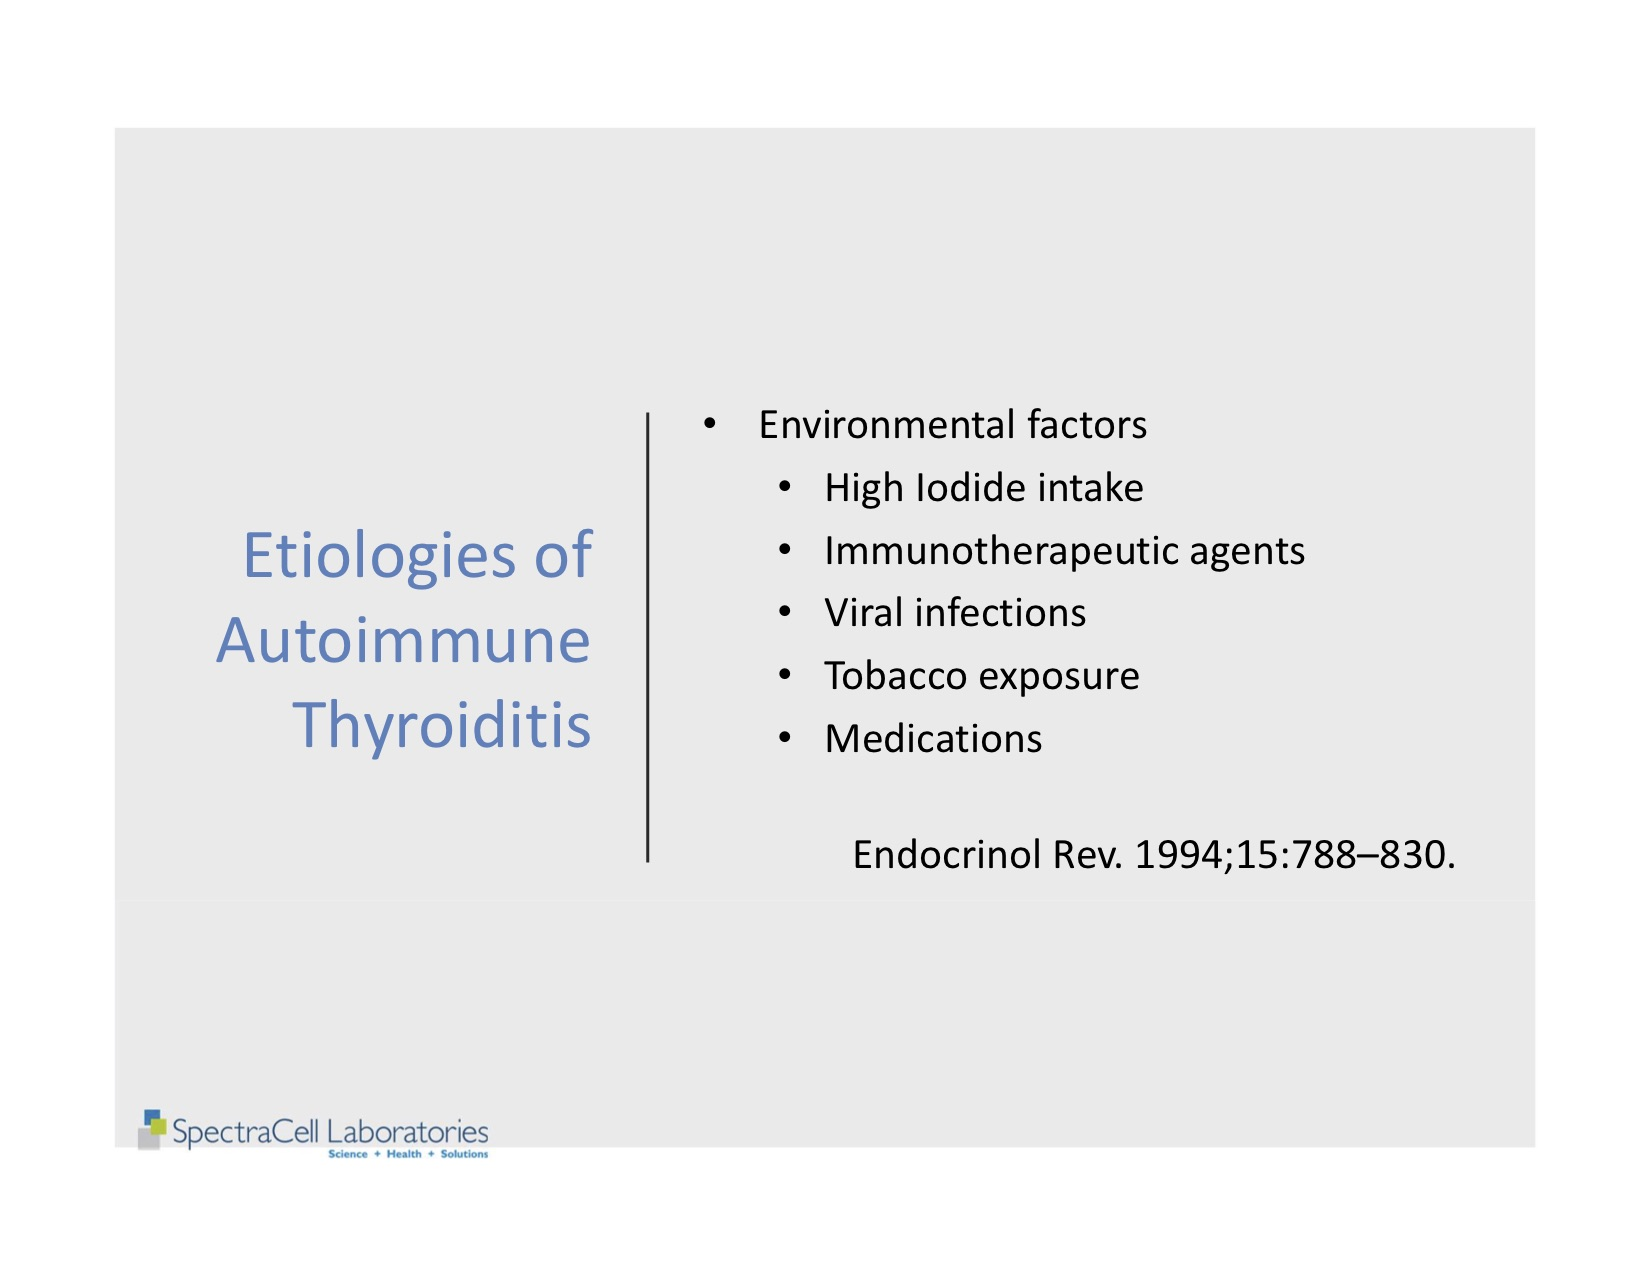 Autism and Thyroid slides 38.jpg